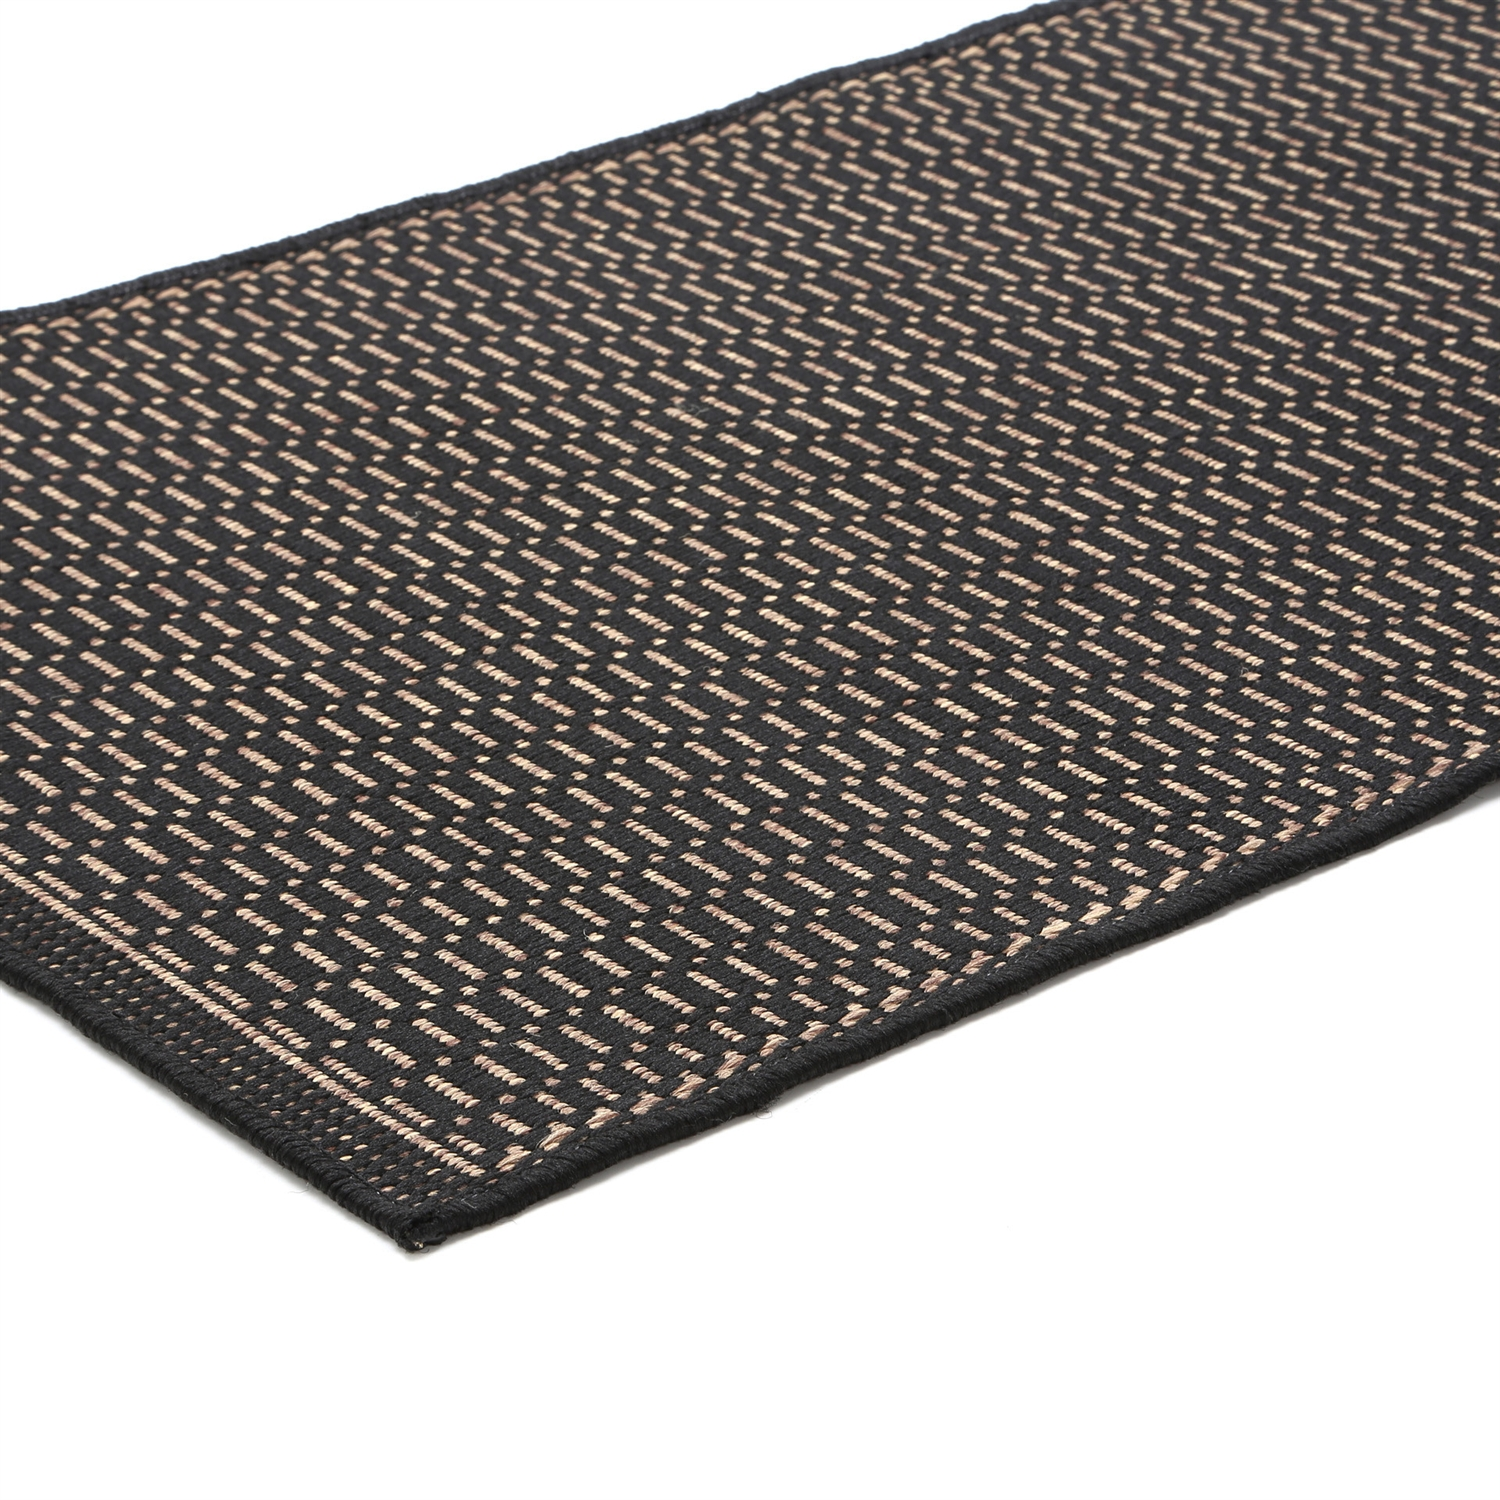 5'3 x 7'6 Saddle Stitch Area Rug in Black Cocoa for Indoor Outdoor Use, RSC8465158 :  Distinctively designed to complement the simple yet classic styling of this 5'3 x 7'6 Saddle Stitch Area Rug in Black Cocoa for Indoor Outdoor Use, uniquely colored to make stone entryways and patio decks warmer and more inviting. The naturally inspired color palette offered in this versatile collection features a series of unique combinations of natural hues that have been selected to complement today's hottest outdoor home furnishings. Including runners and special shapes in the form of rounds and squares. Featuring a Structured Flatwoven Construction; Primary Color: Black; Secondary Colors: Natural-Beige.